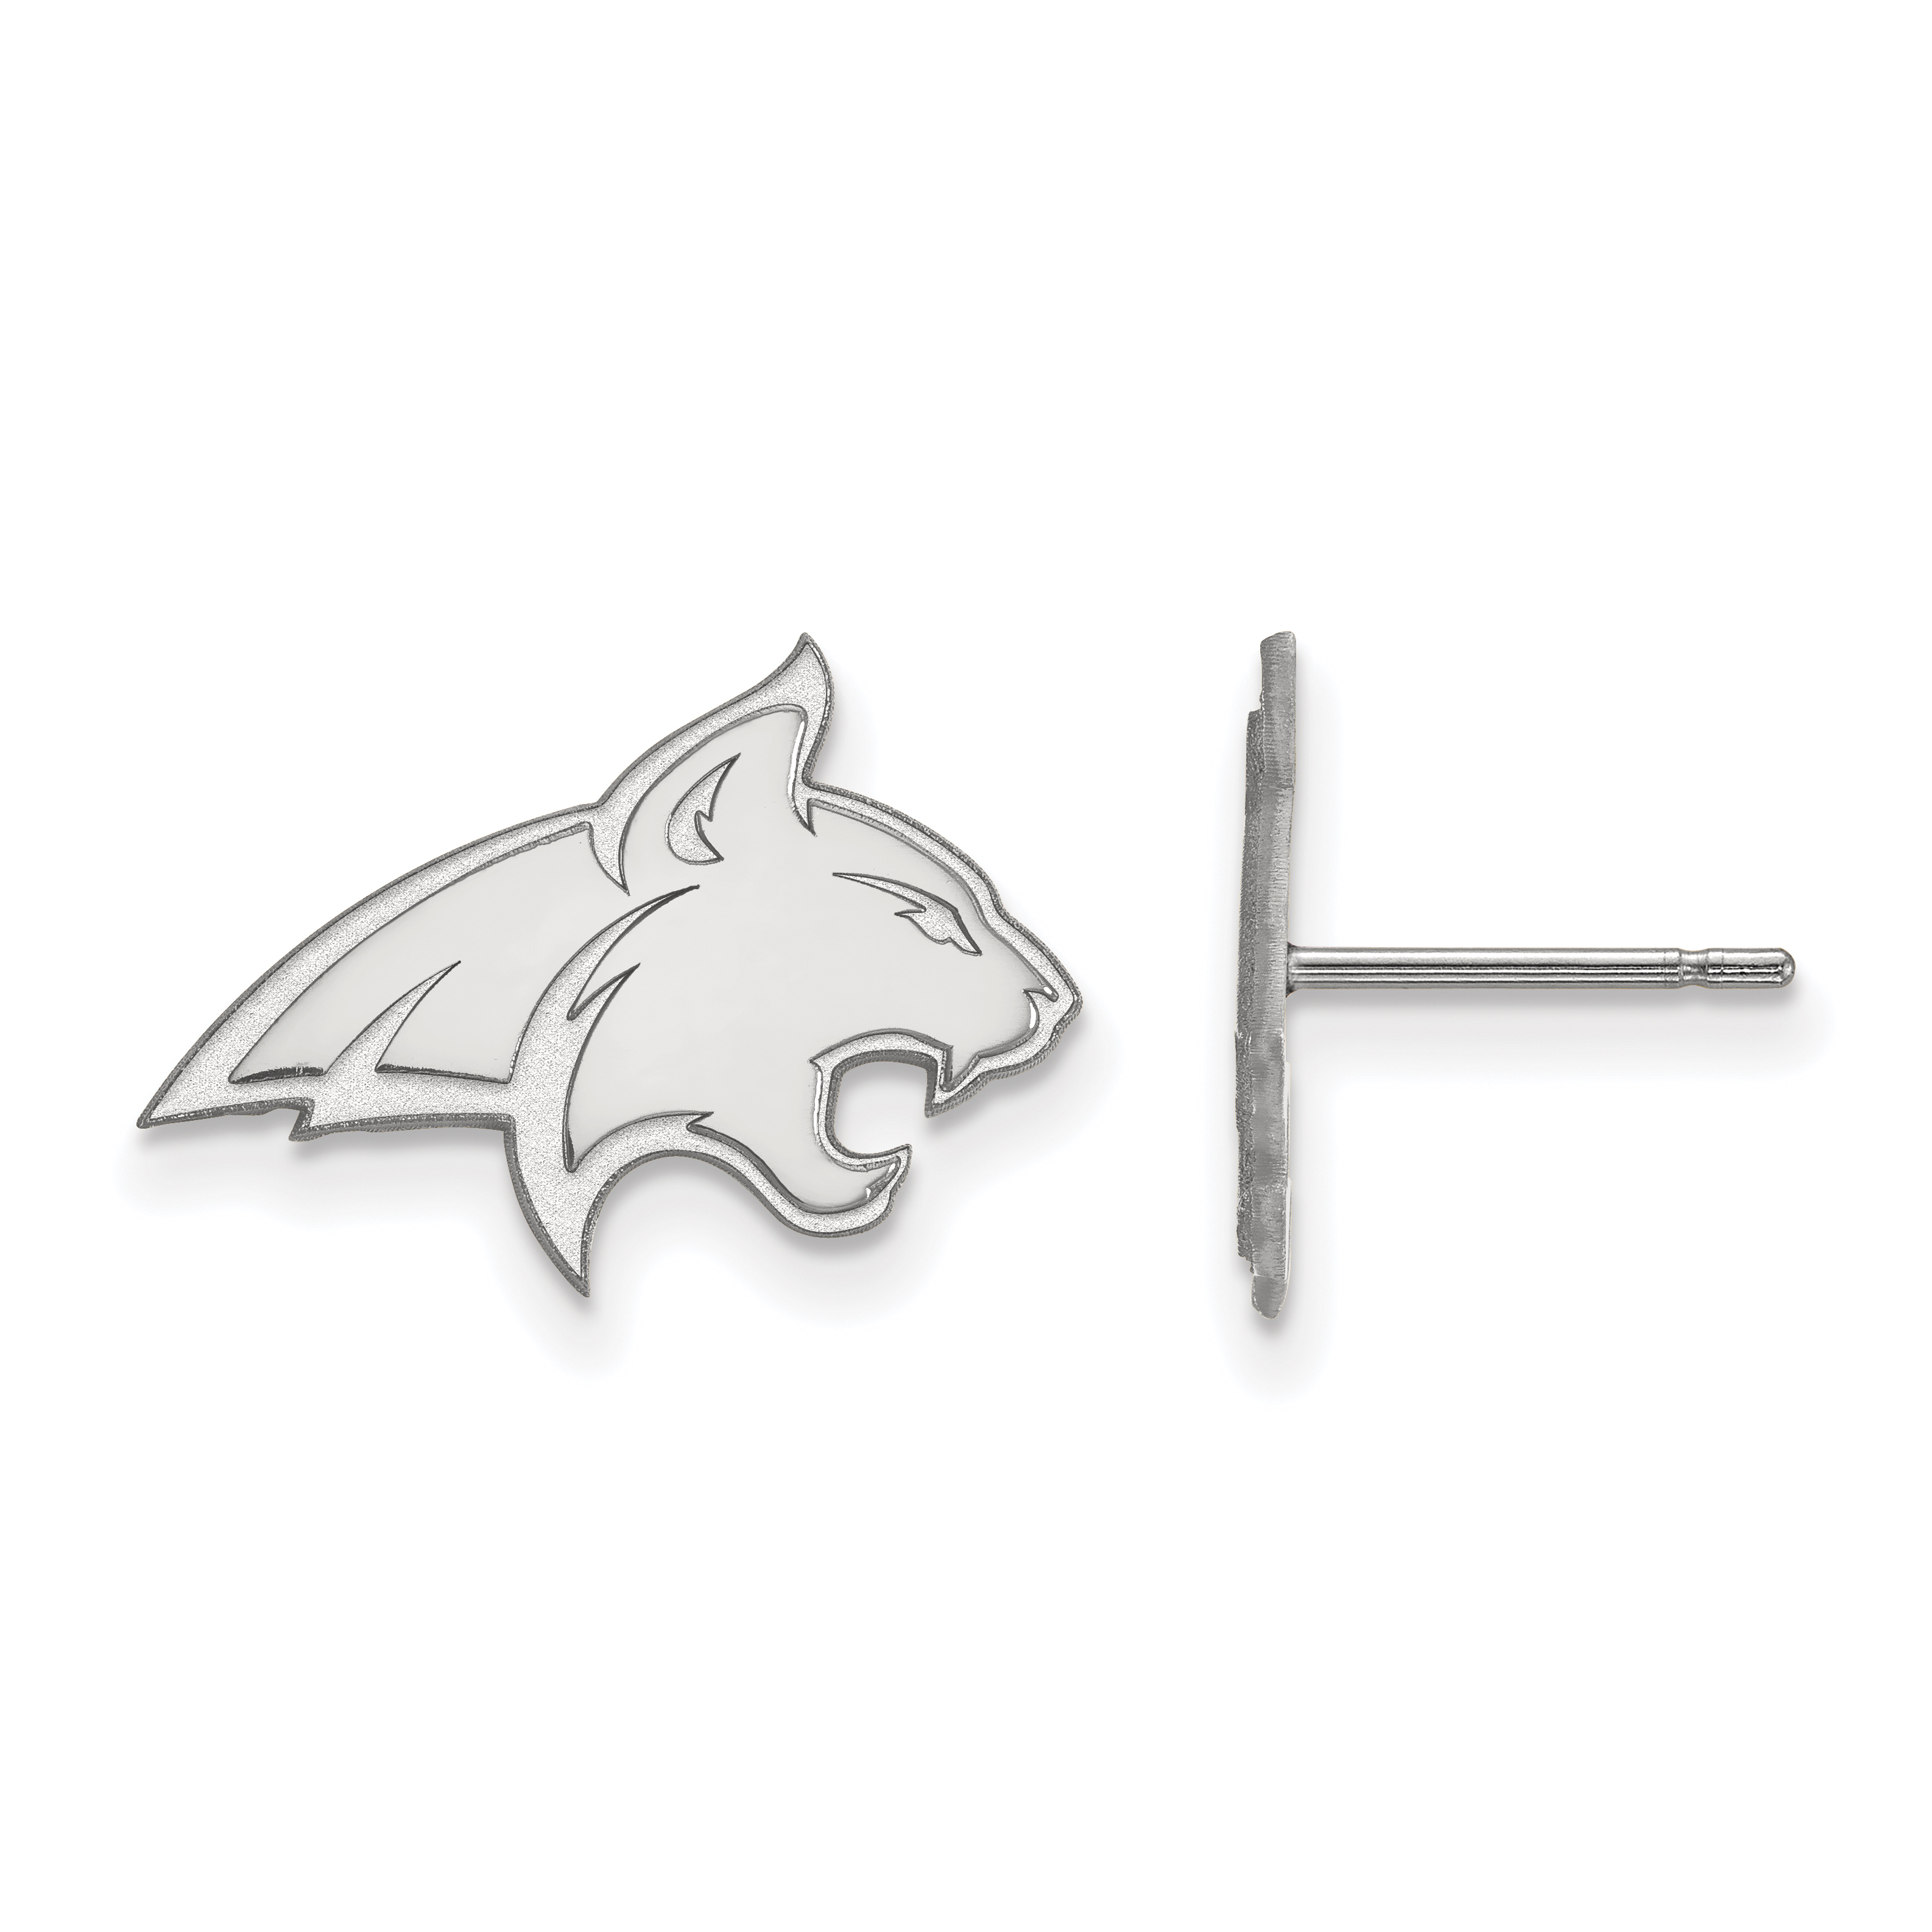 10kw Montana State University Small Post Earrings. weight: 1.63, Lengh: 12mm